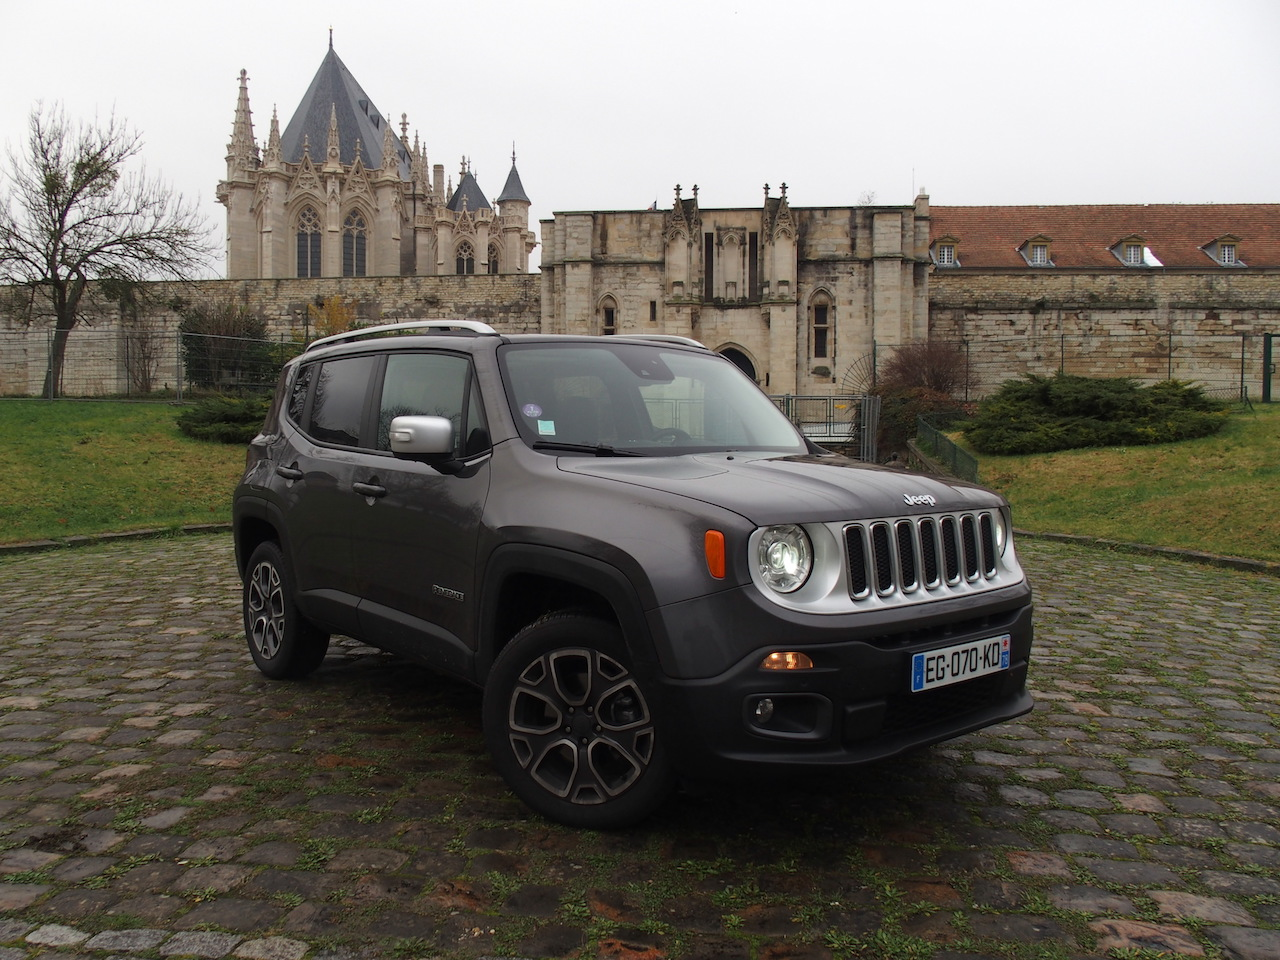 essai jeep renegade 1 4 multiair 170 bva9 le bouillant cube blog automobile. Black Bedroom Furniture Sets. Home Design Ideas